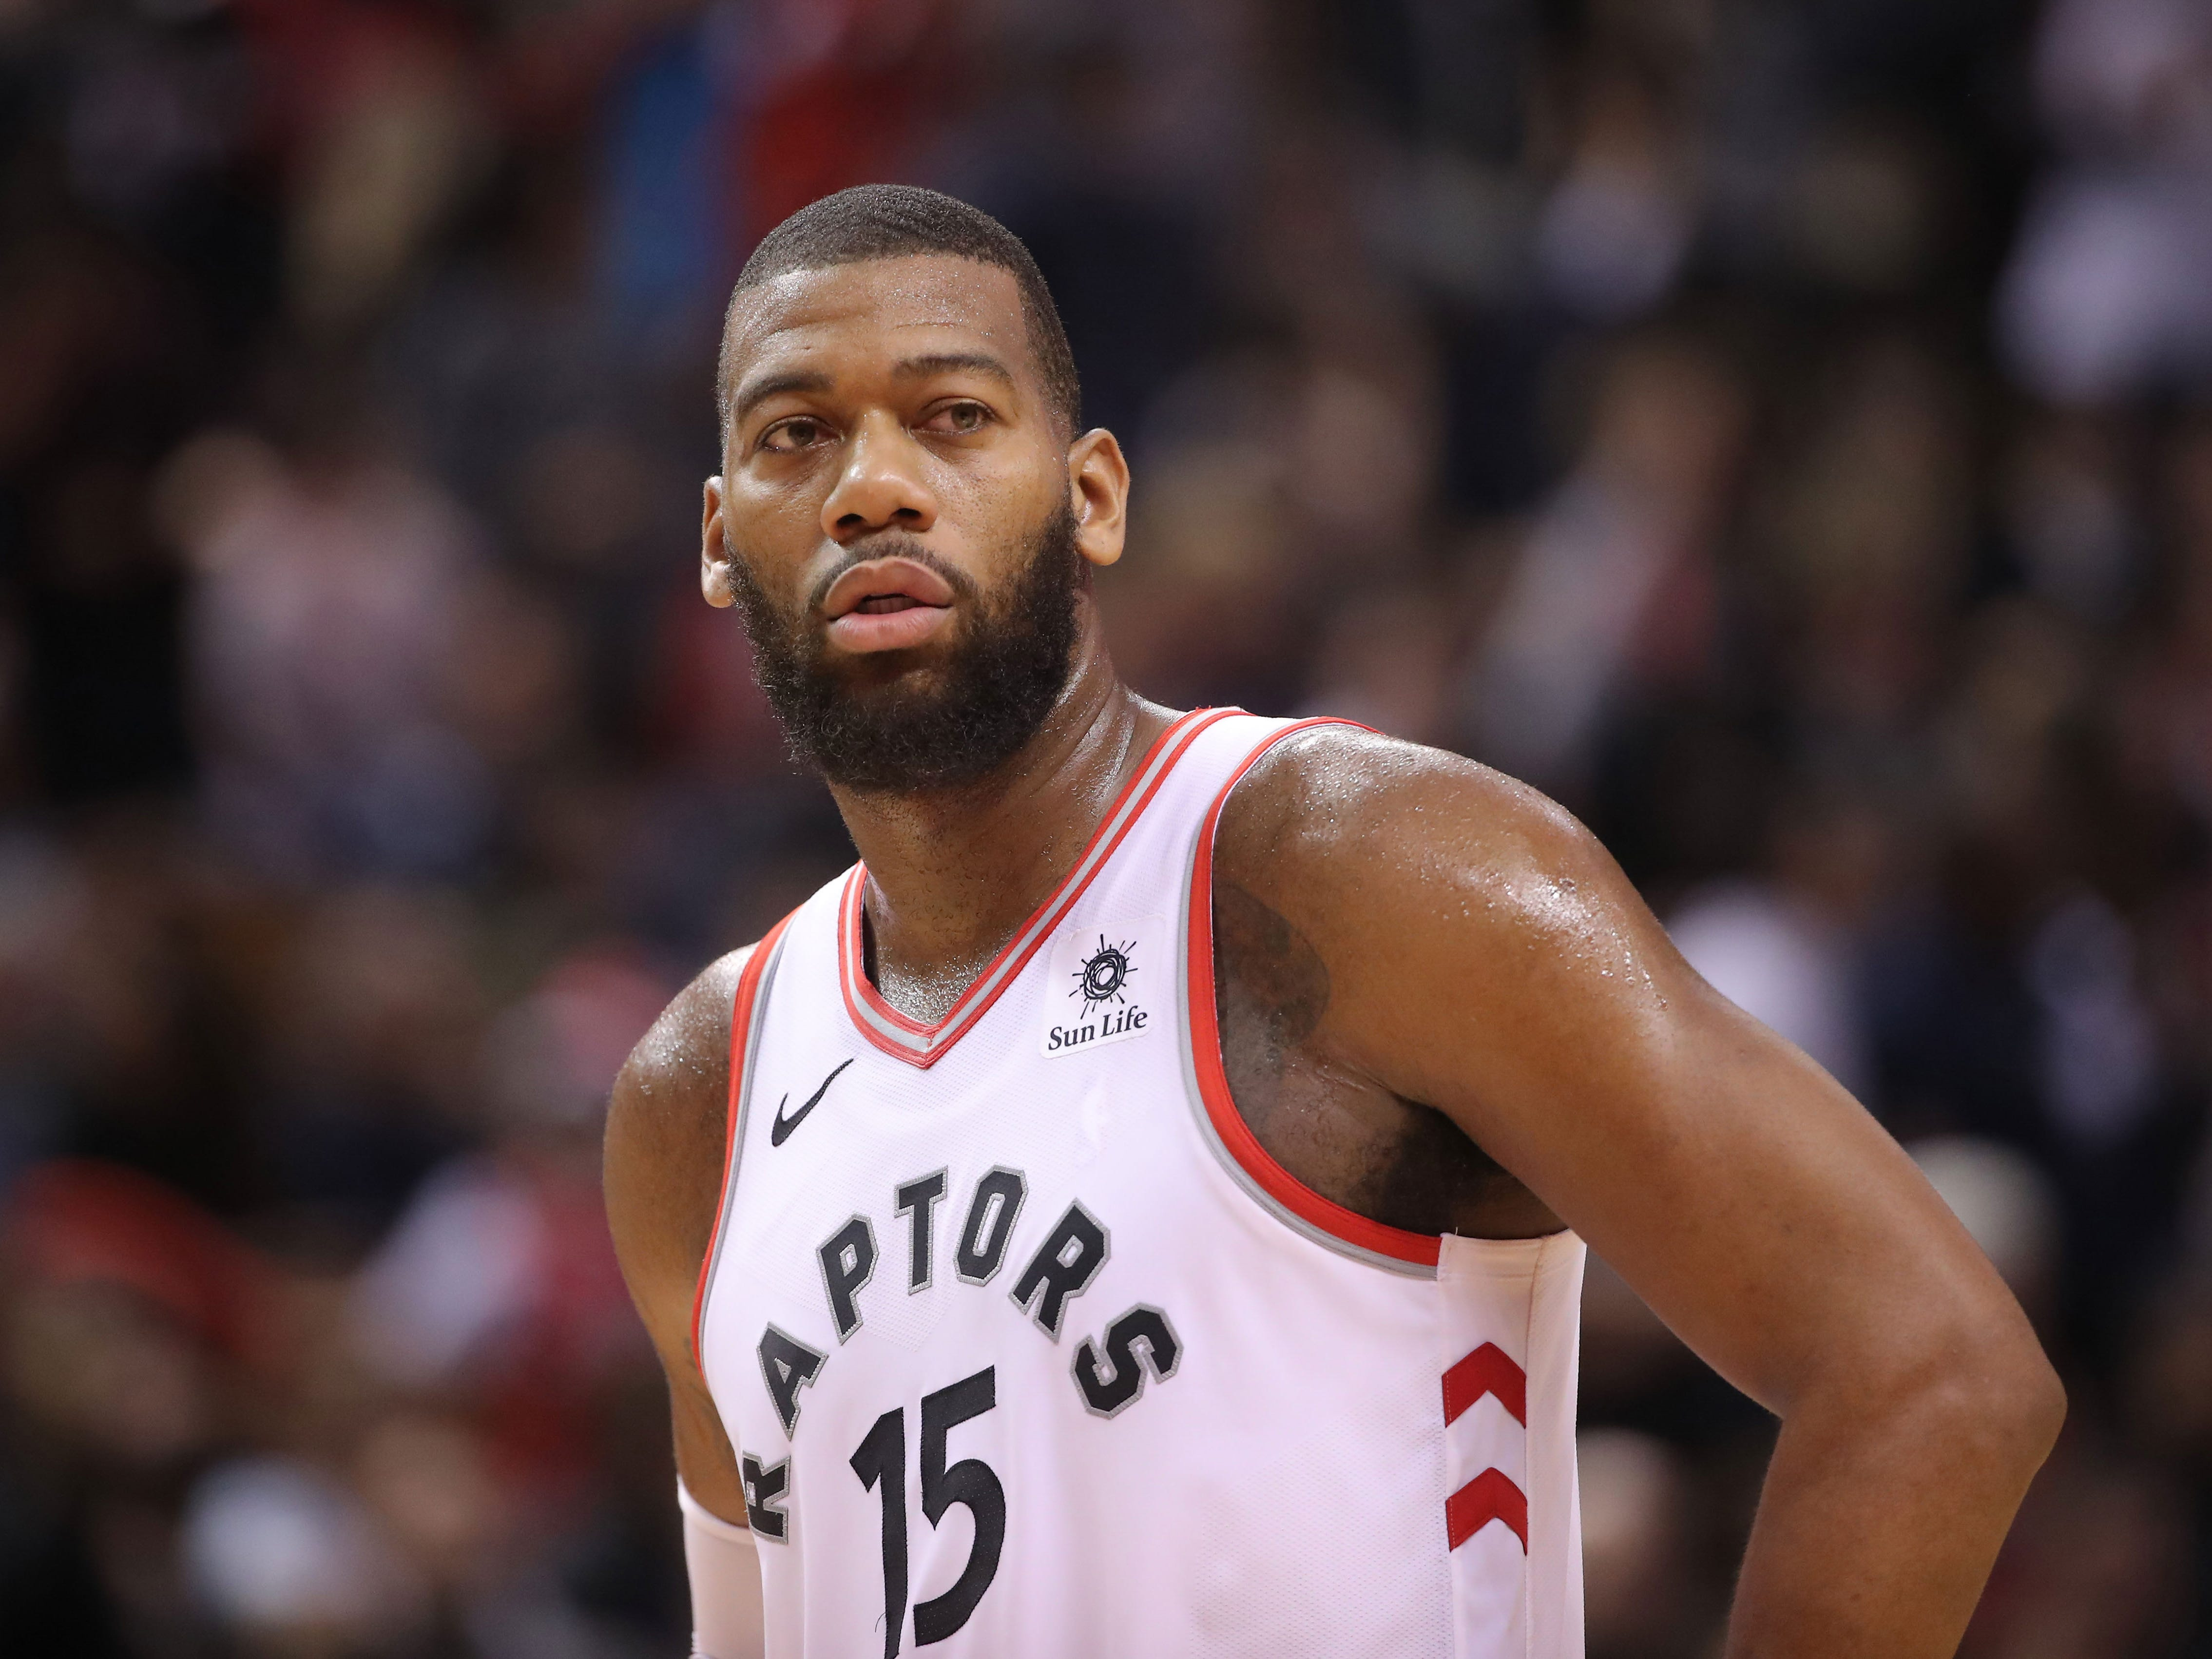 Toronto Raptors center Greg Monroe looks on against the Los Angeles Clippers in Toronto, Feb. 3, 2019.